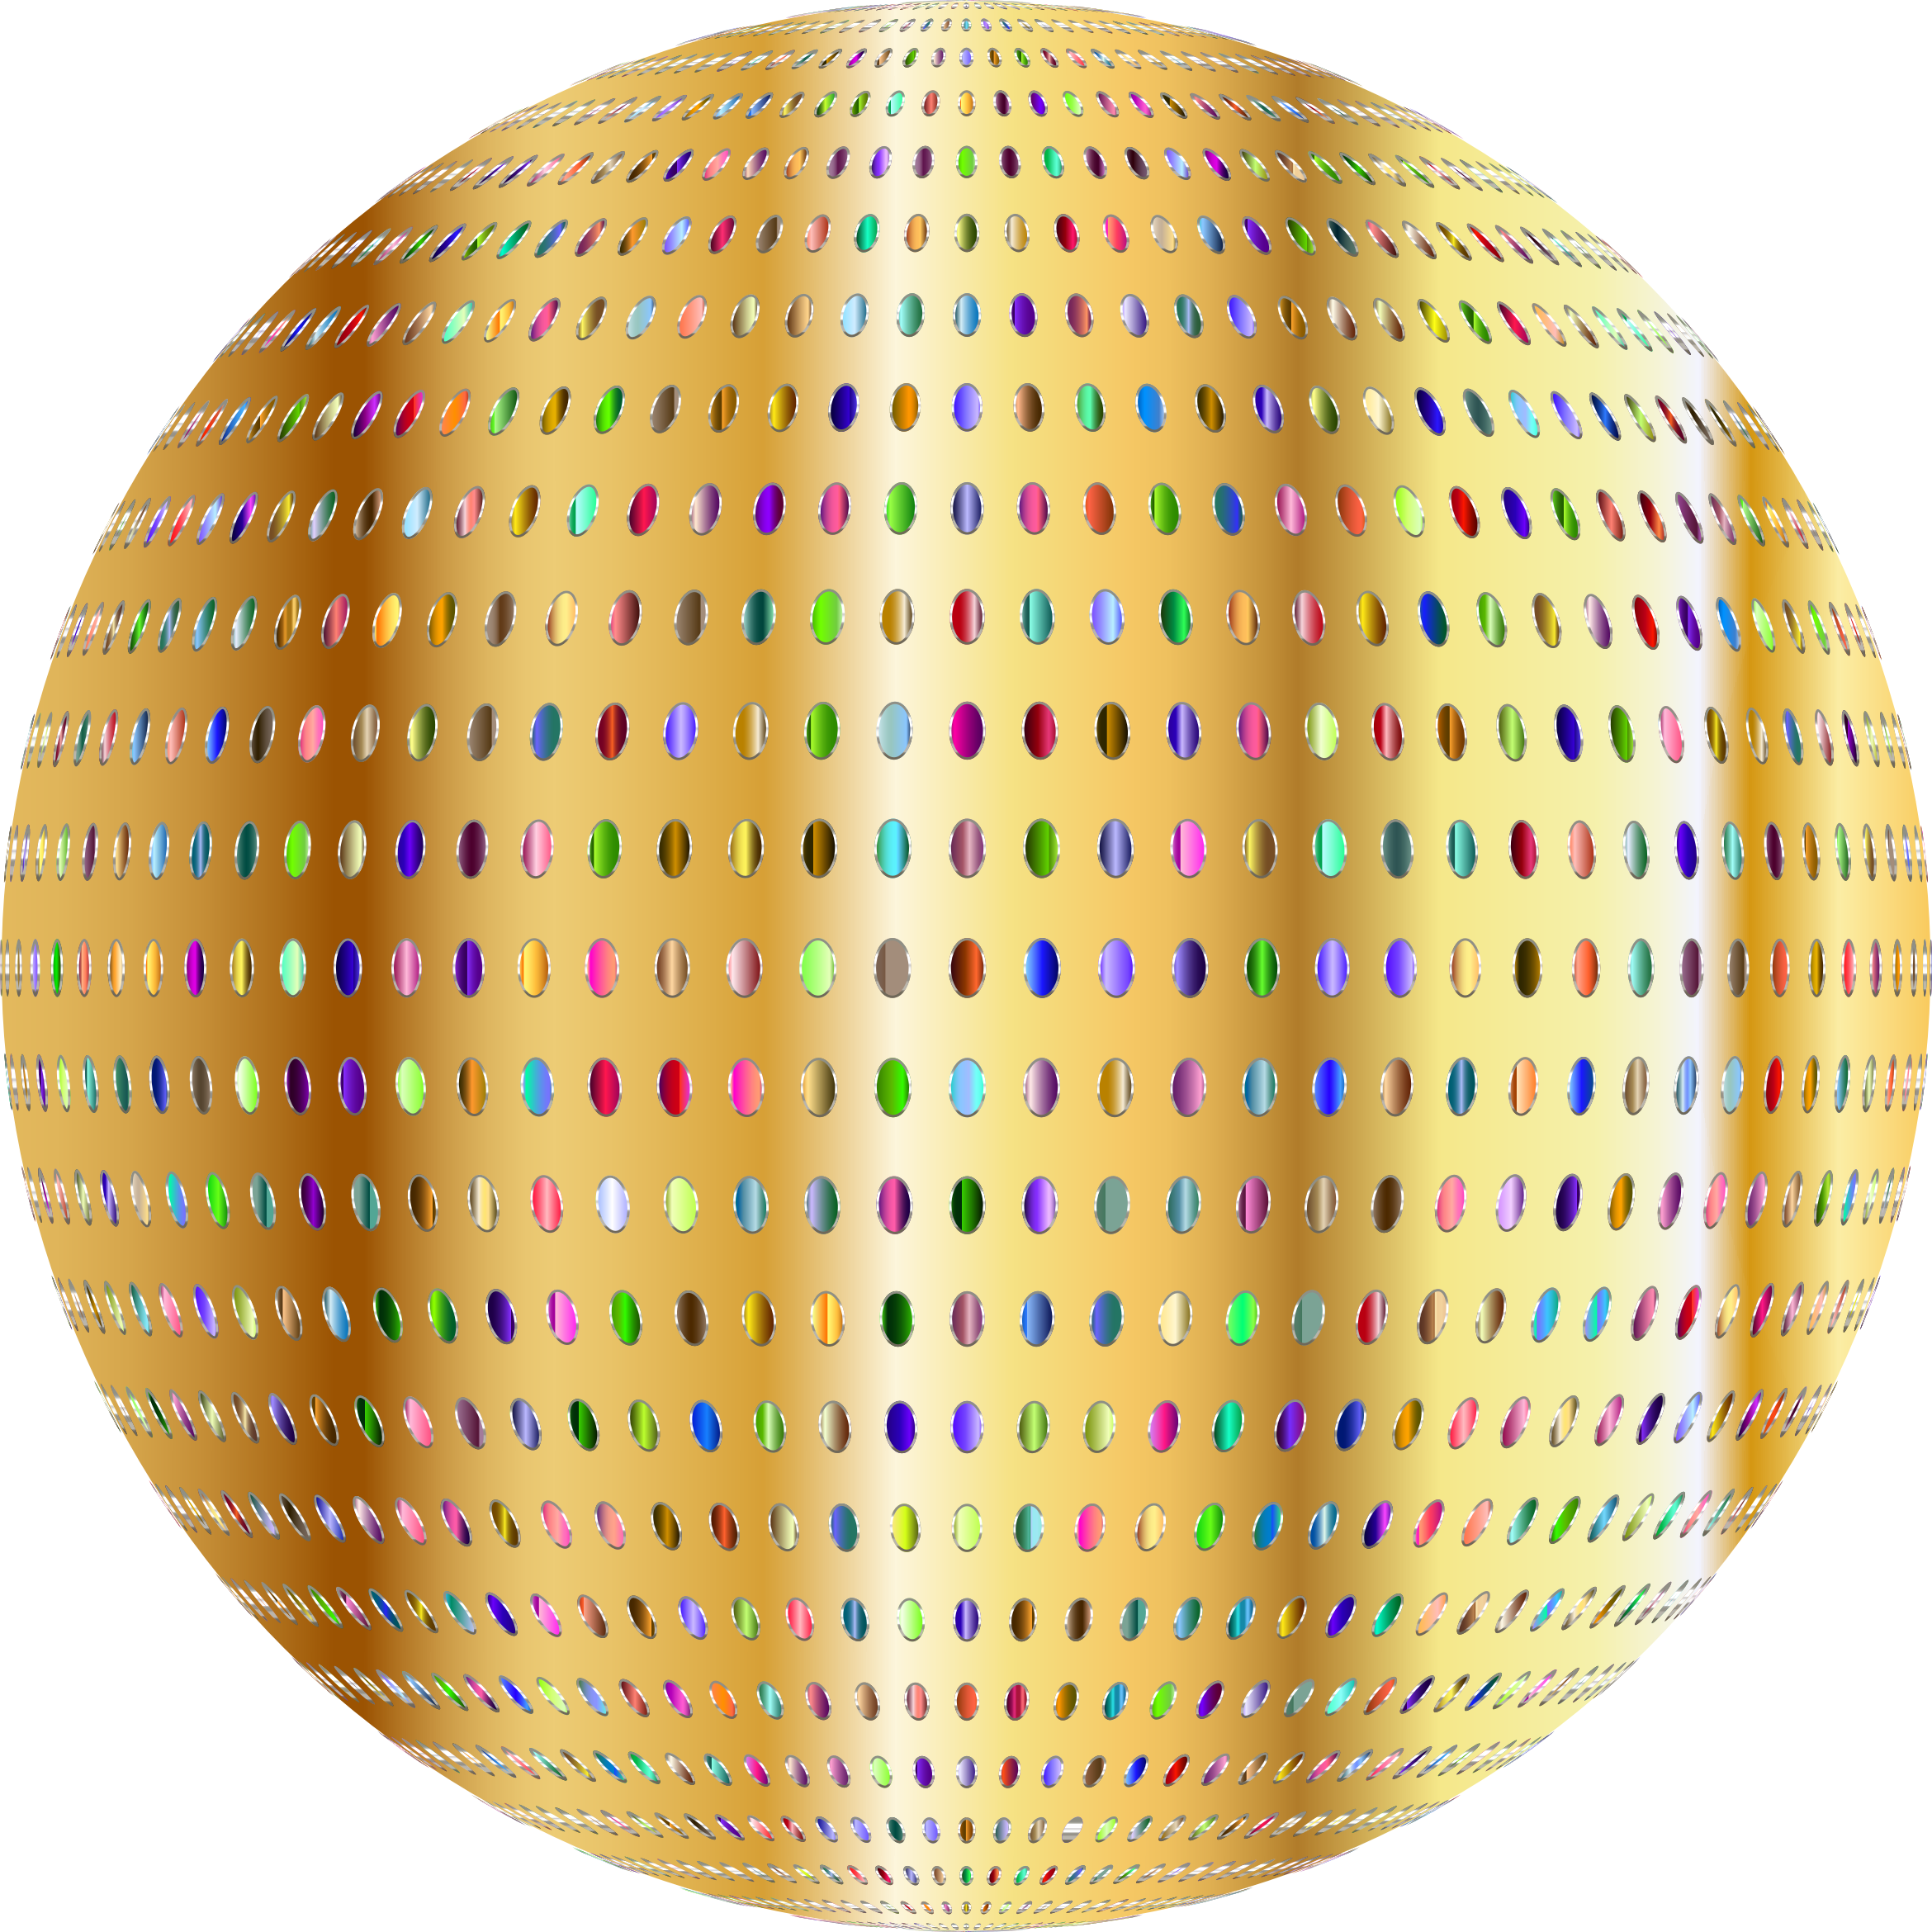 Gold Polka Dots Sphere Variation 2 by GDJ